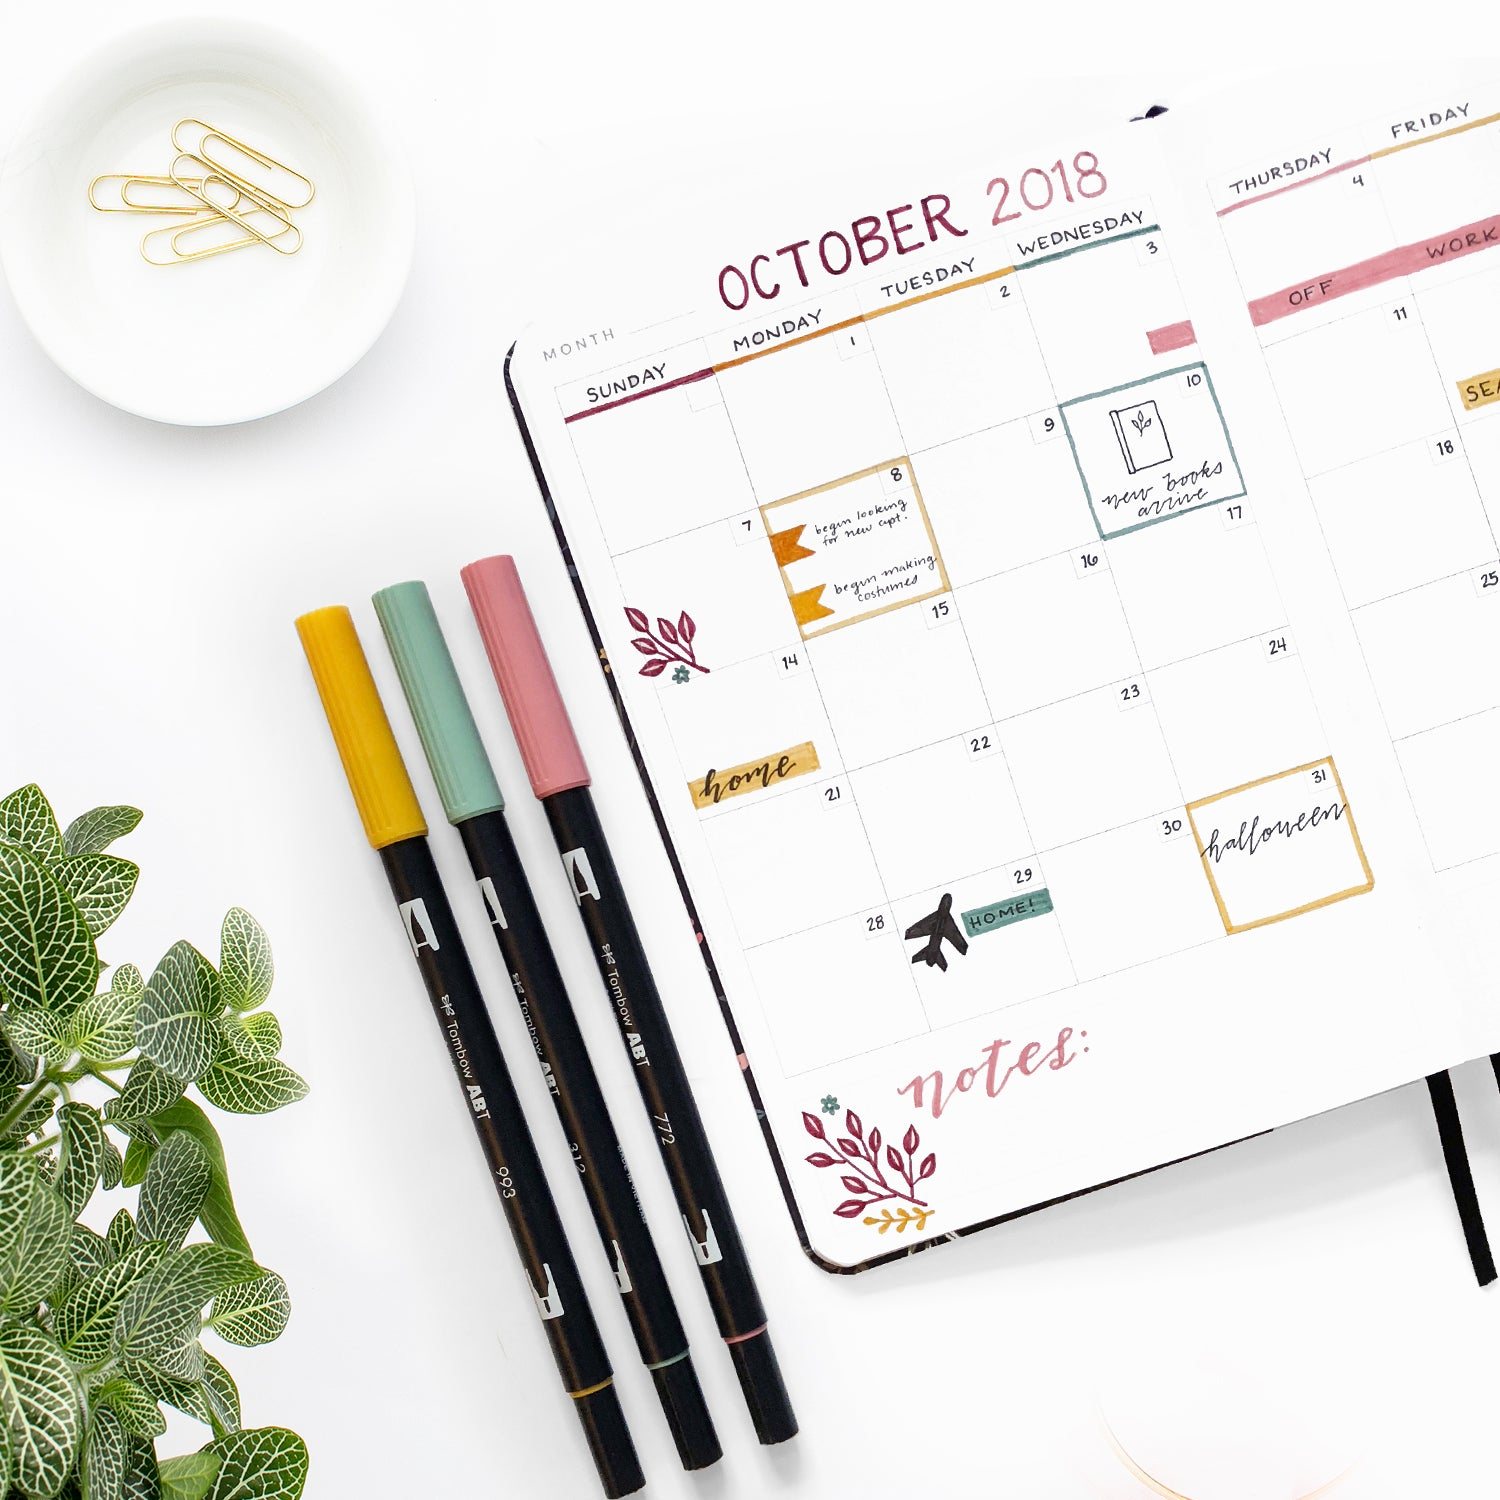 Color Code your planner